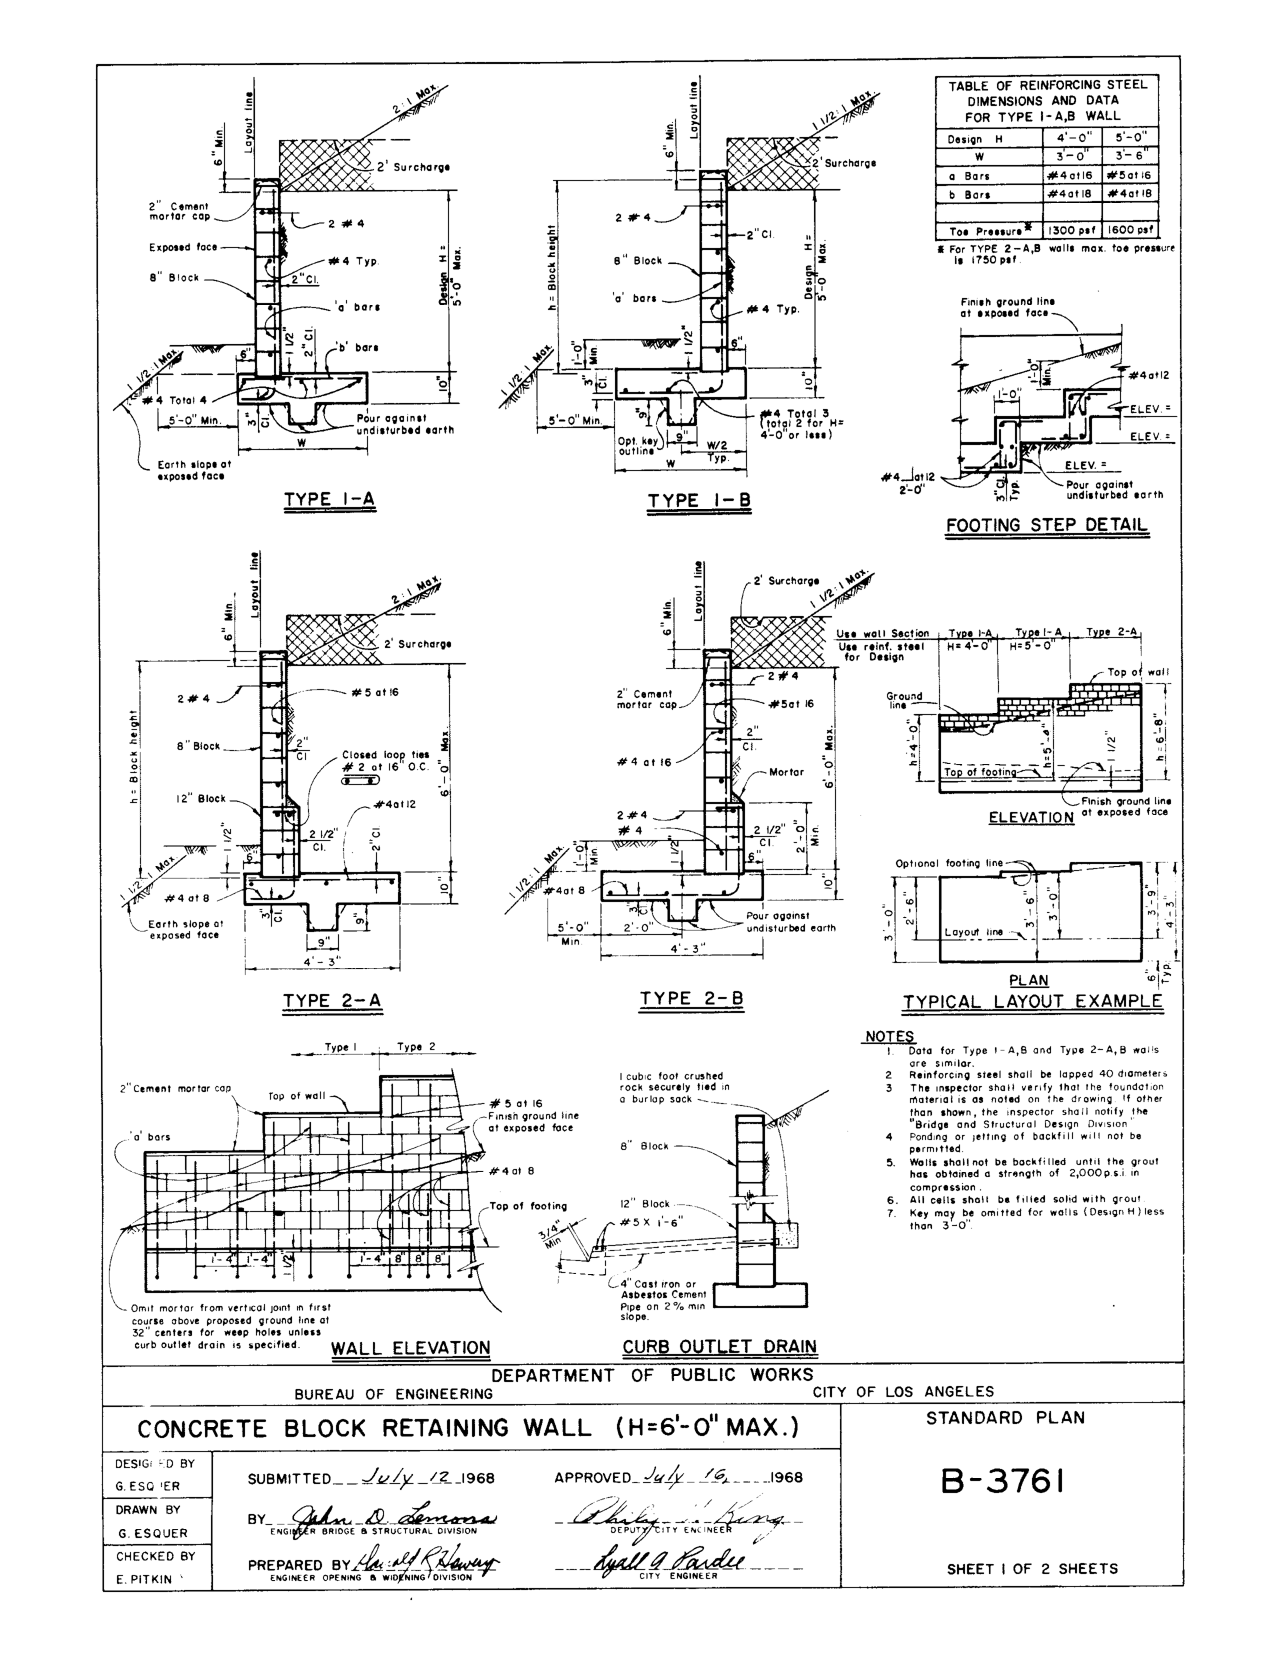 small resolution of concrete block retaining wall detail architecture building a new home new home construction weblog www thejonathanalonso com newhomeconstruction